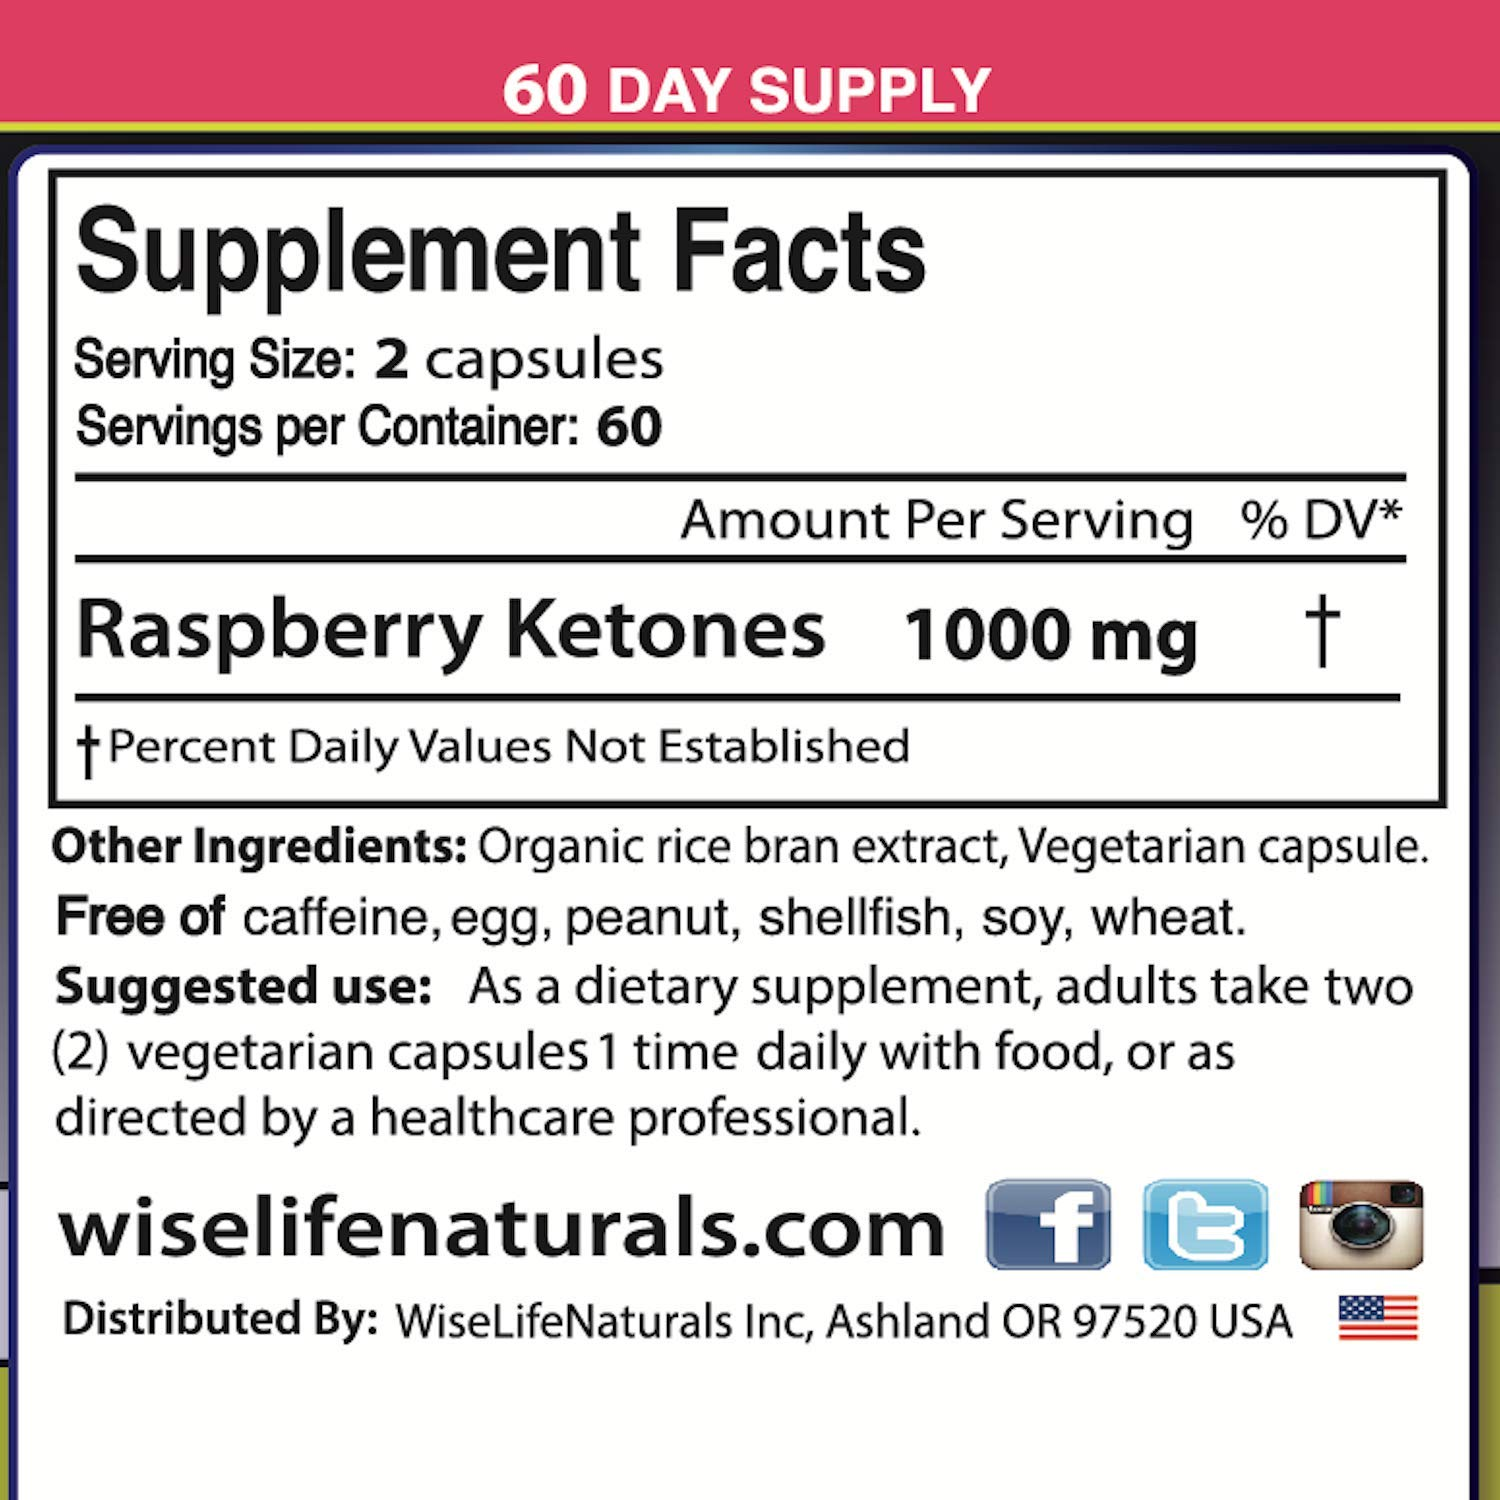 Best Fast Metabolism Slimming Pill - Pure Raspberry Ketones Fresh 1000mg Plus Max Burn, Lose Fat Quickly Proven Supports Rapid Ketogenic Diet Weight Loss, Works Naturally, Slim at Home No Side Effects by WiseLifeNaturals (Image #6)